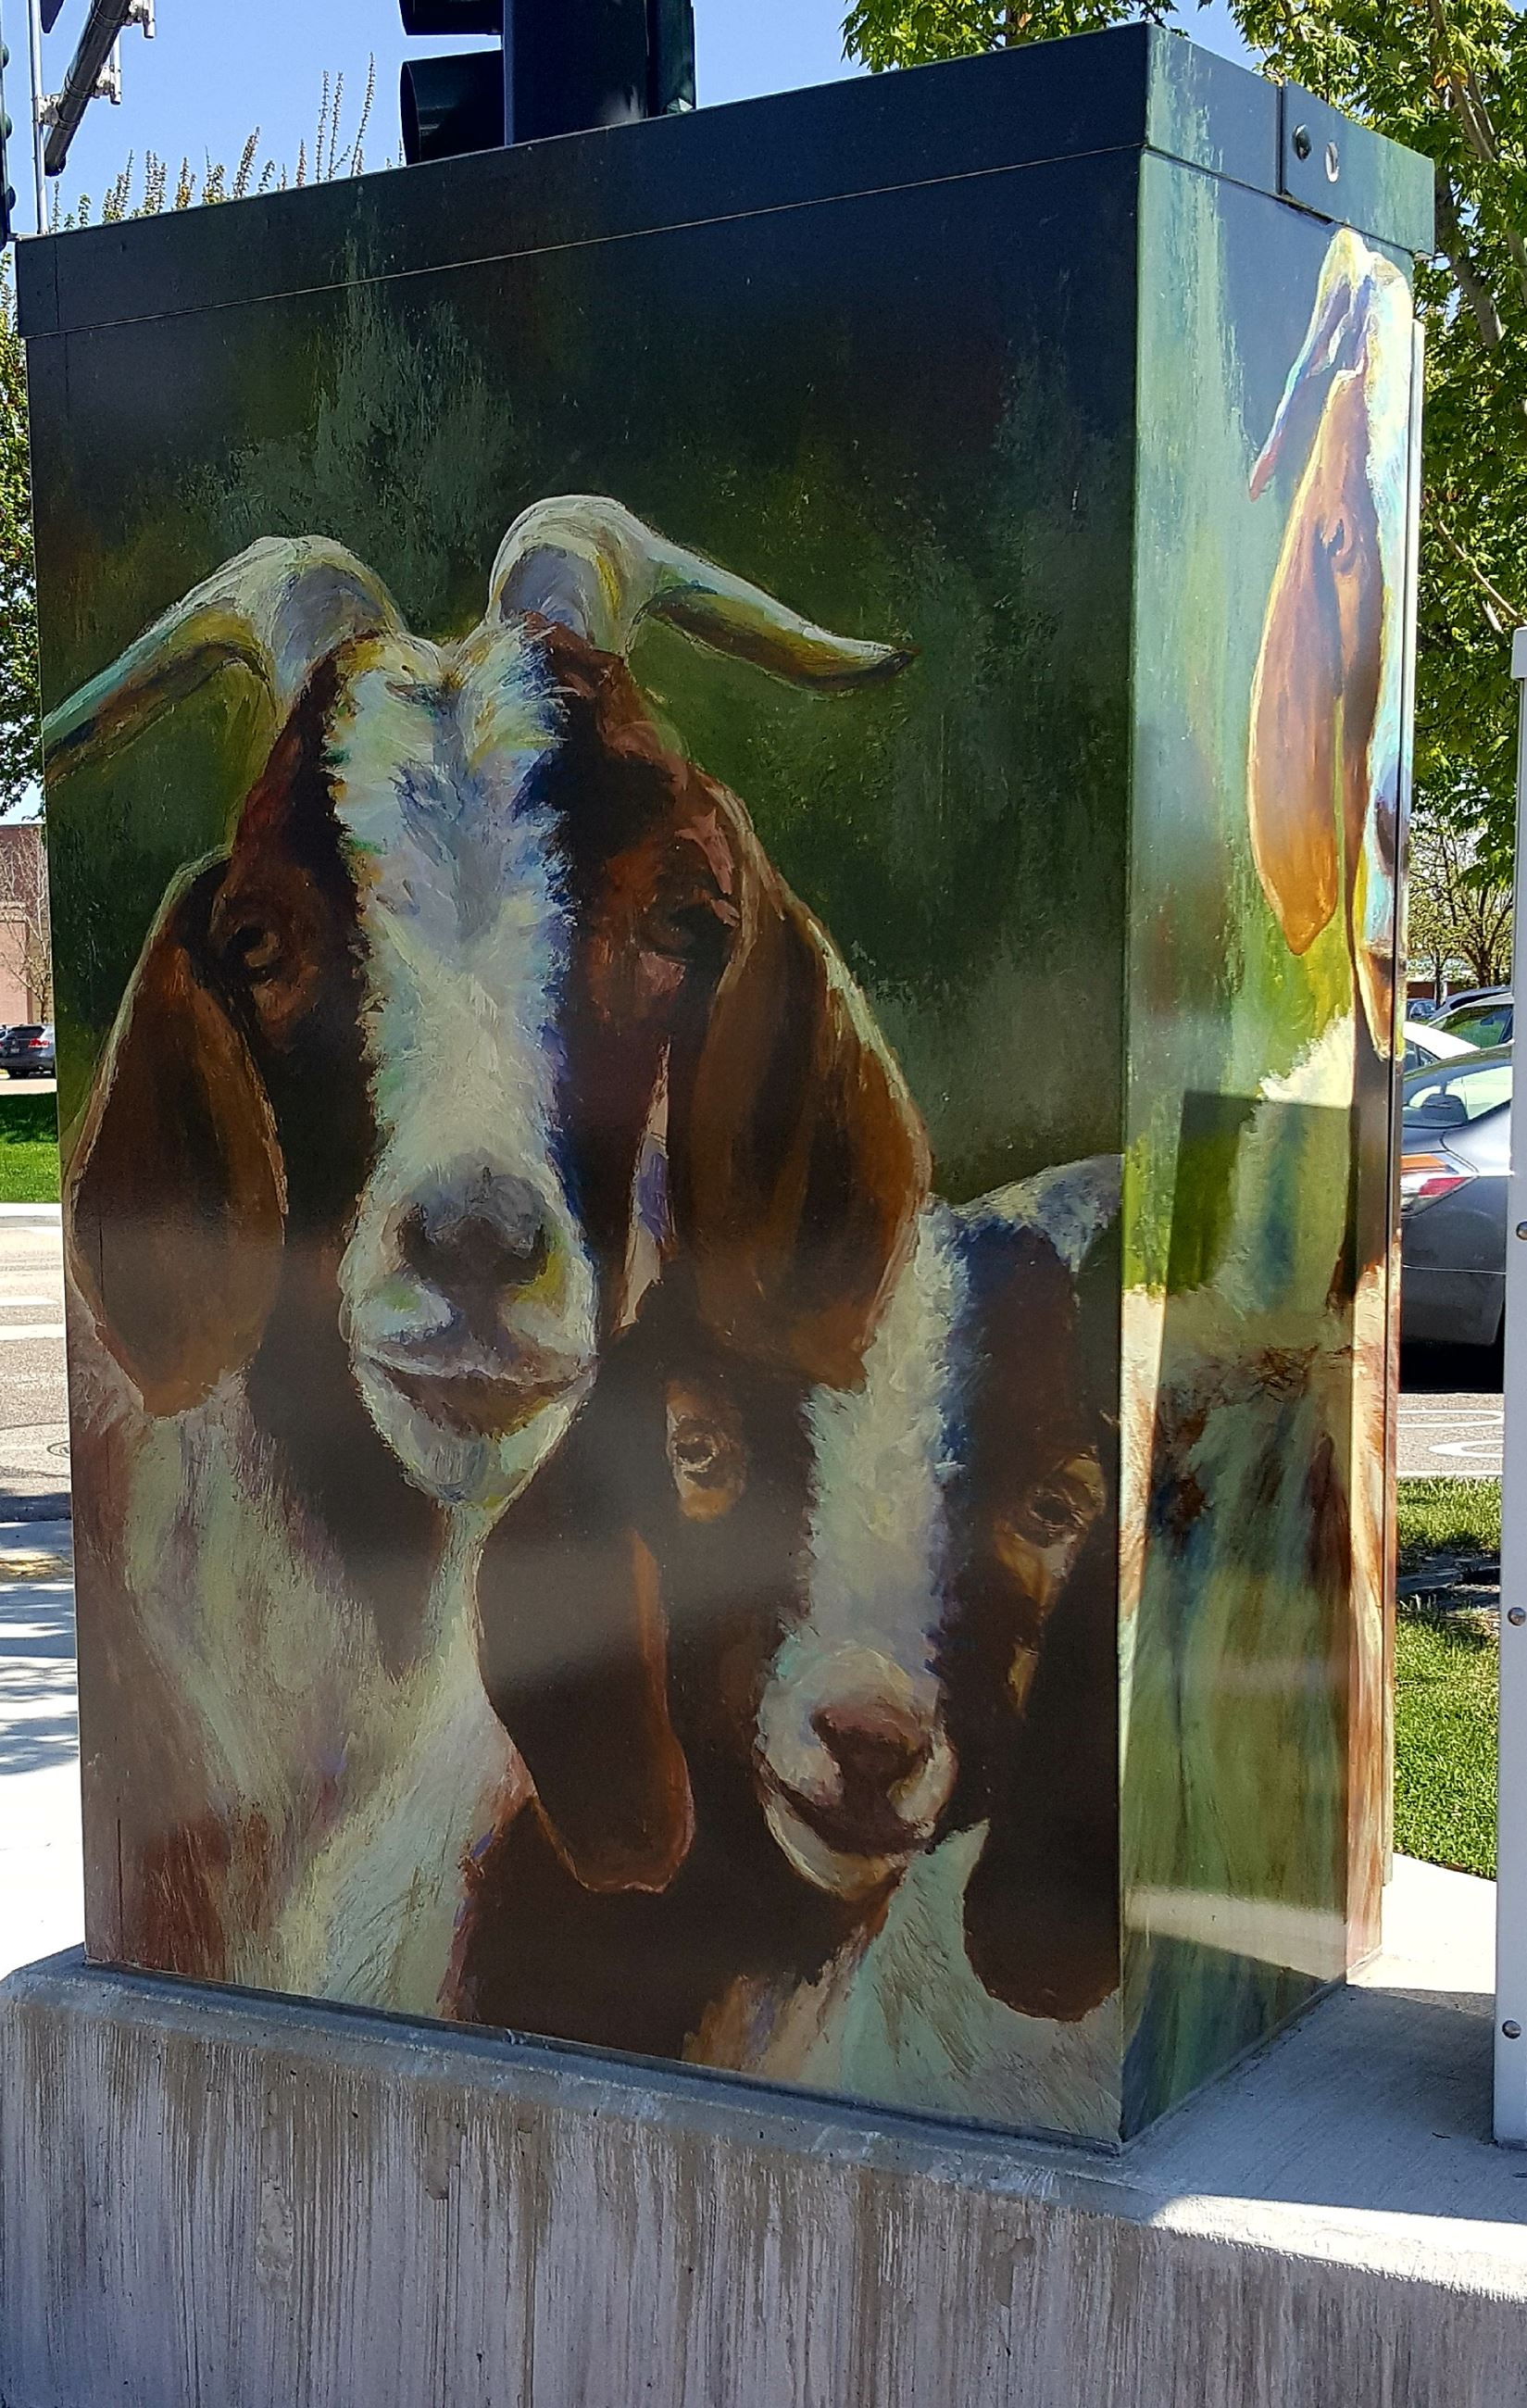 Electrical box painted with images of goats.